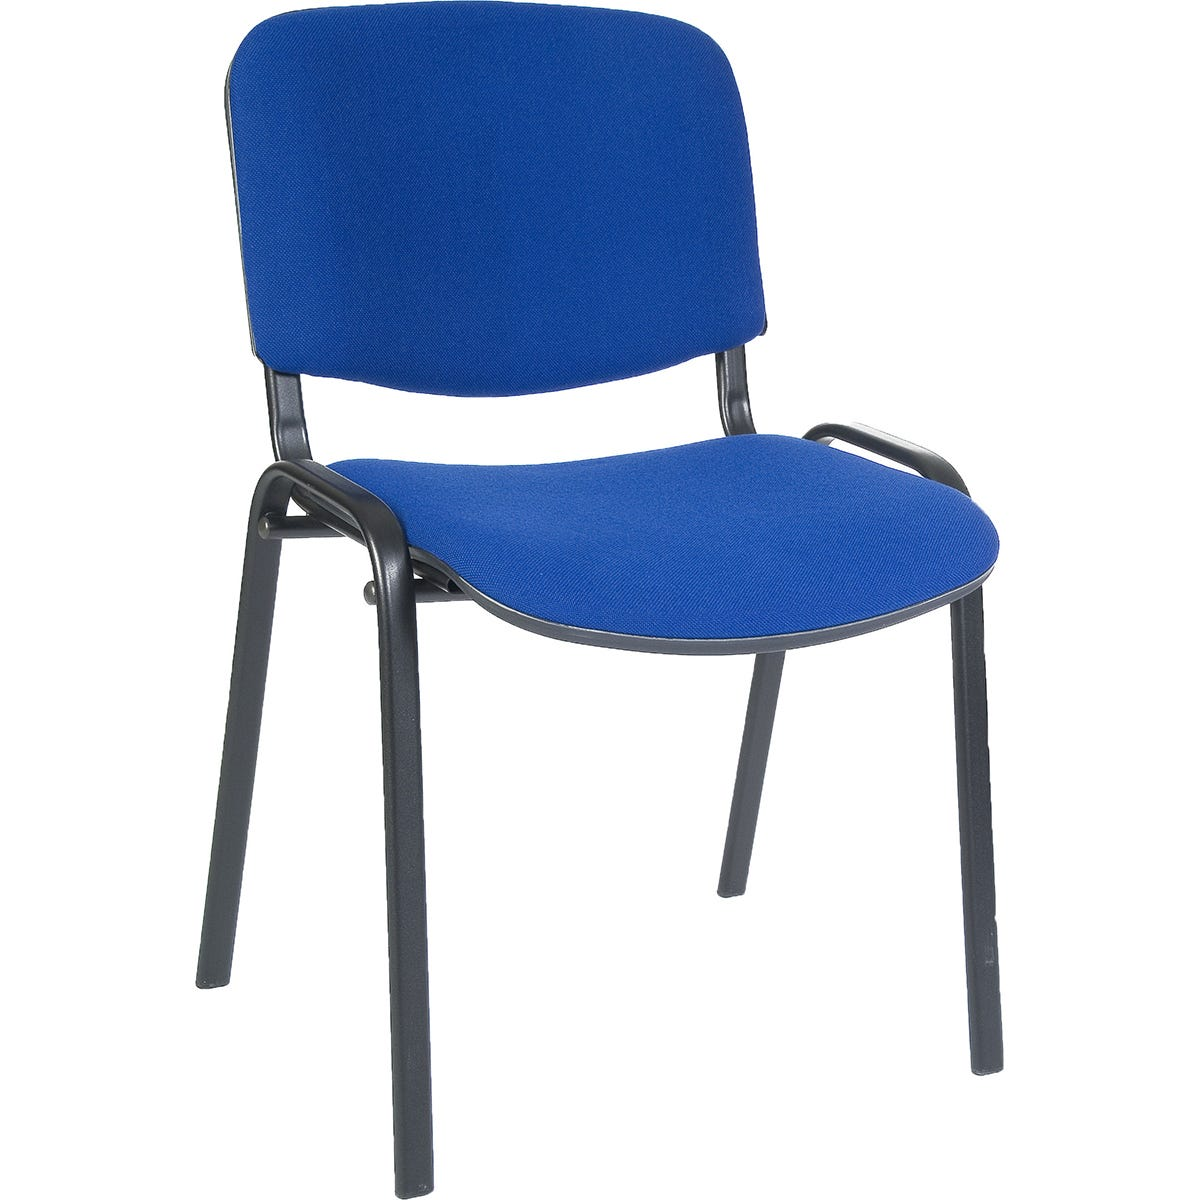 Teknik Office Stackable Conference Chair with Padded Seat and Backrest - Black Fabric